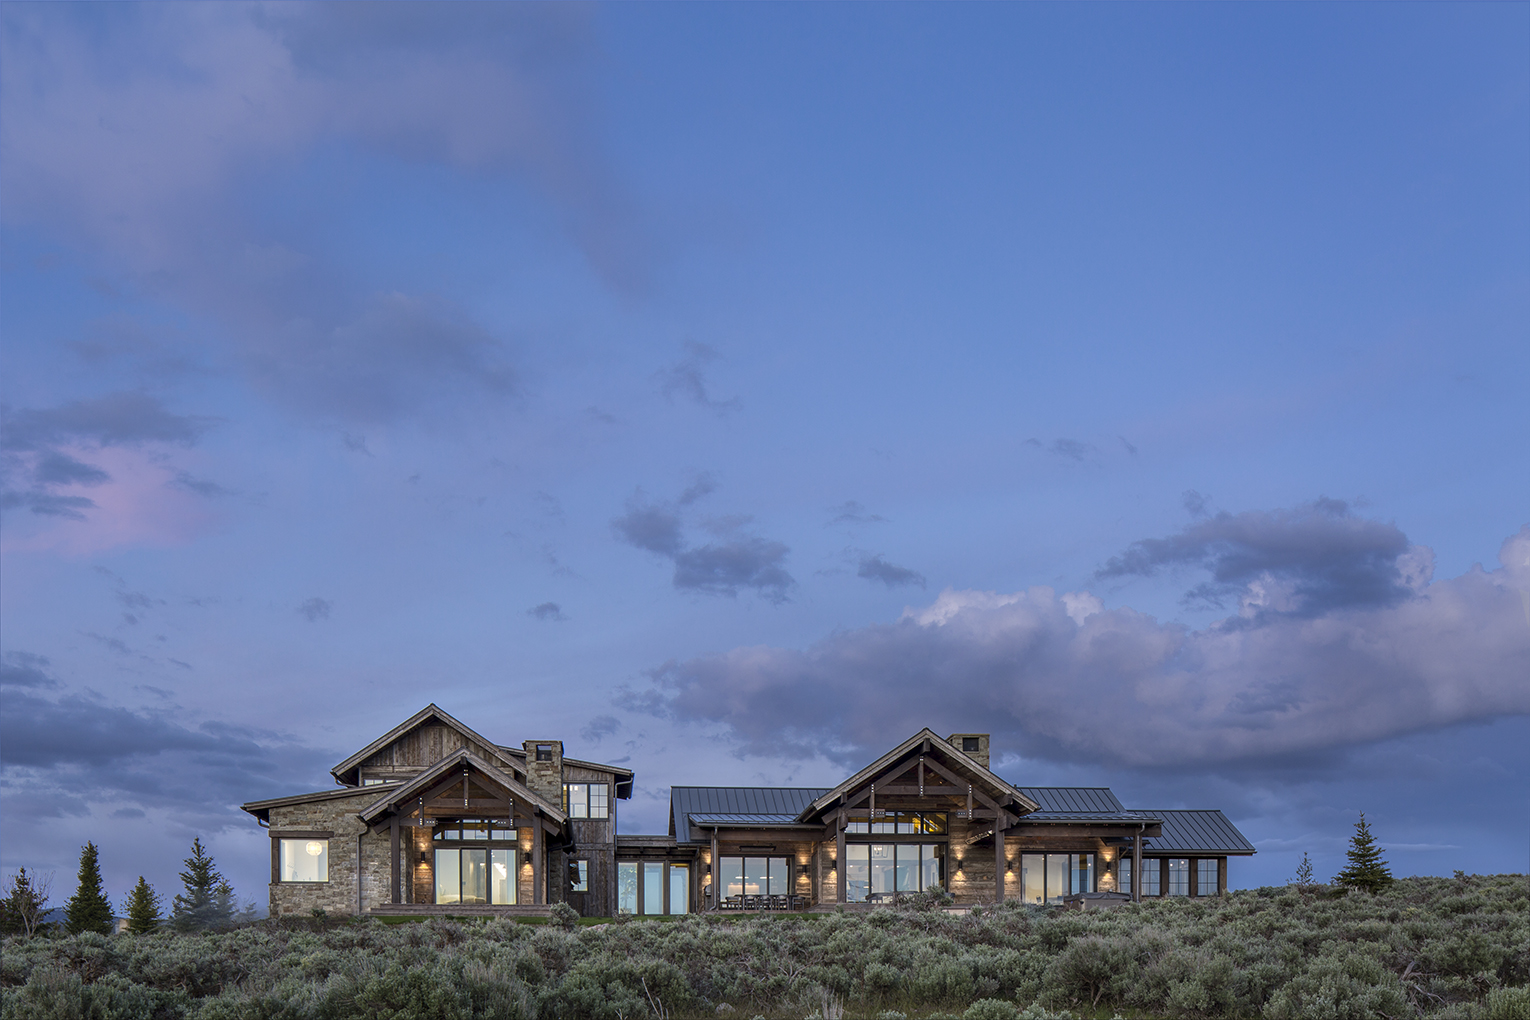 exterior photograph of luxury residence at dusk near Park City, Utah. The image shows dramatic skies and the home is clad in natural wood with warmth radiating from a lit interior.